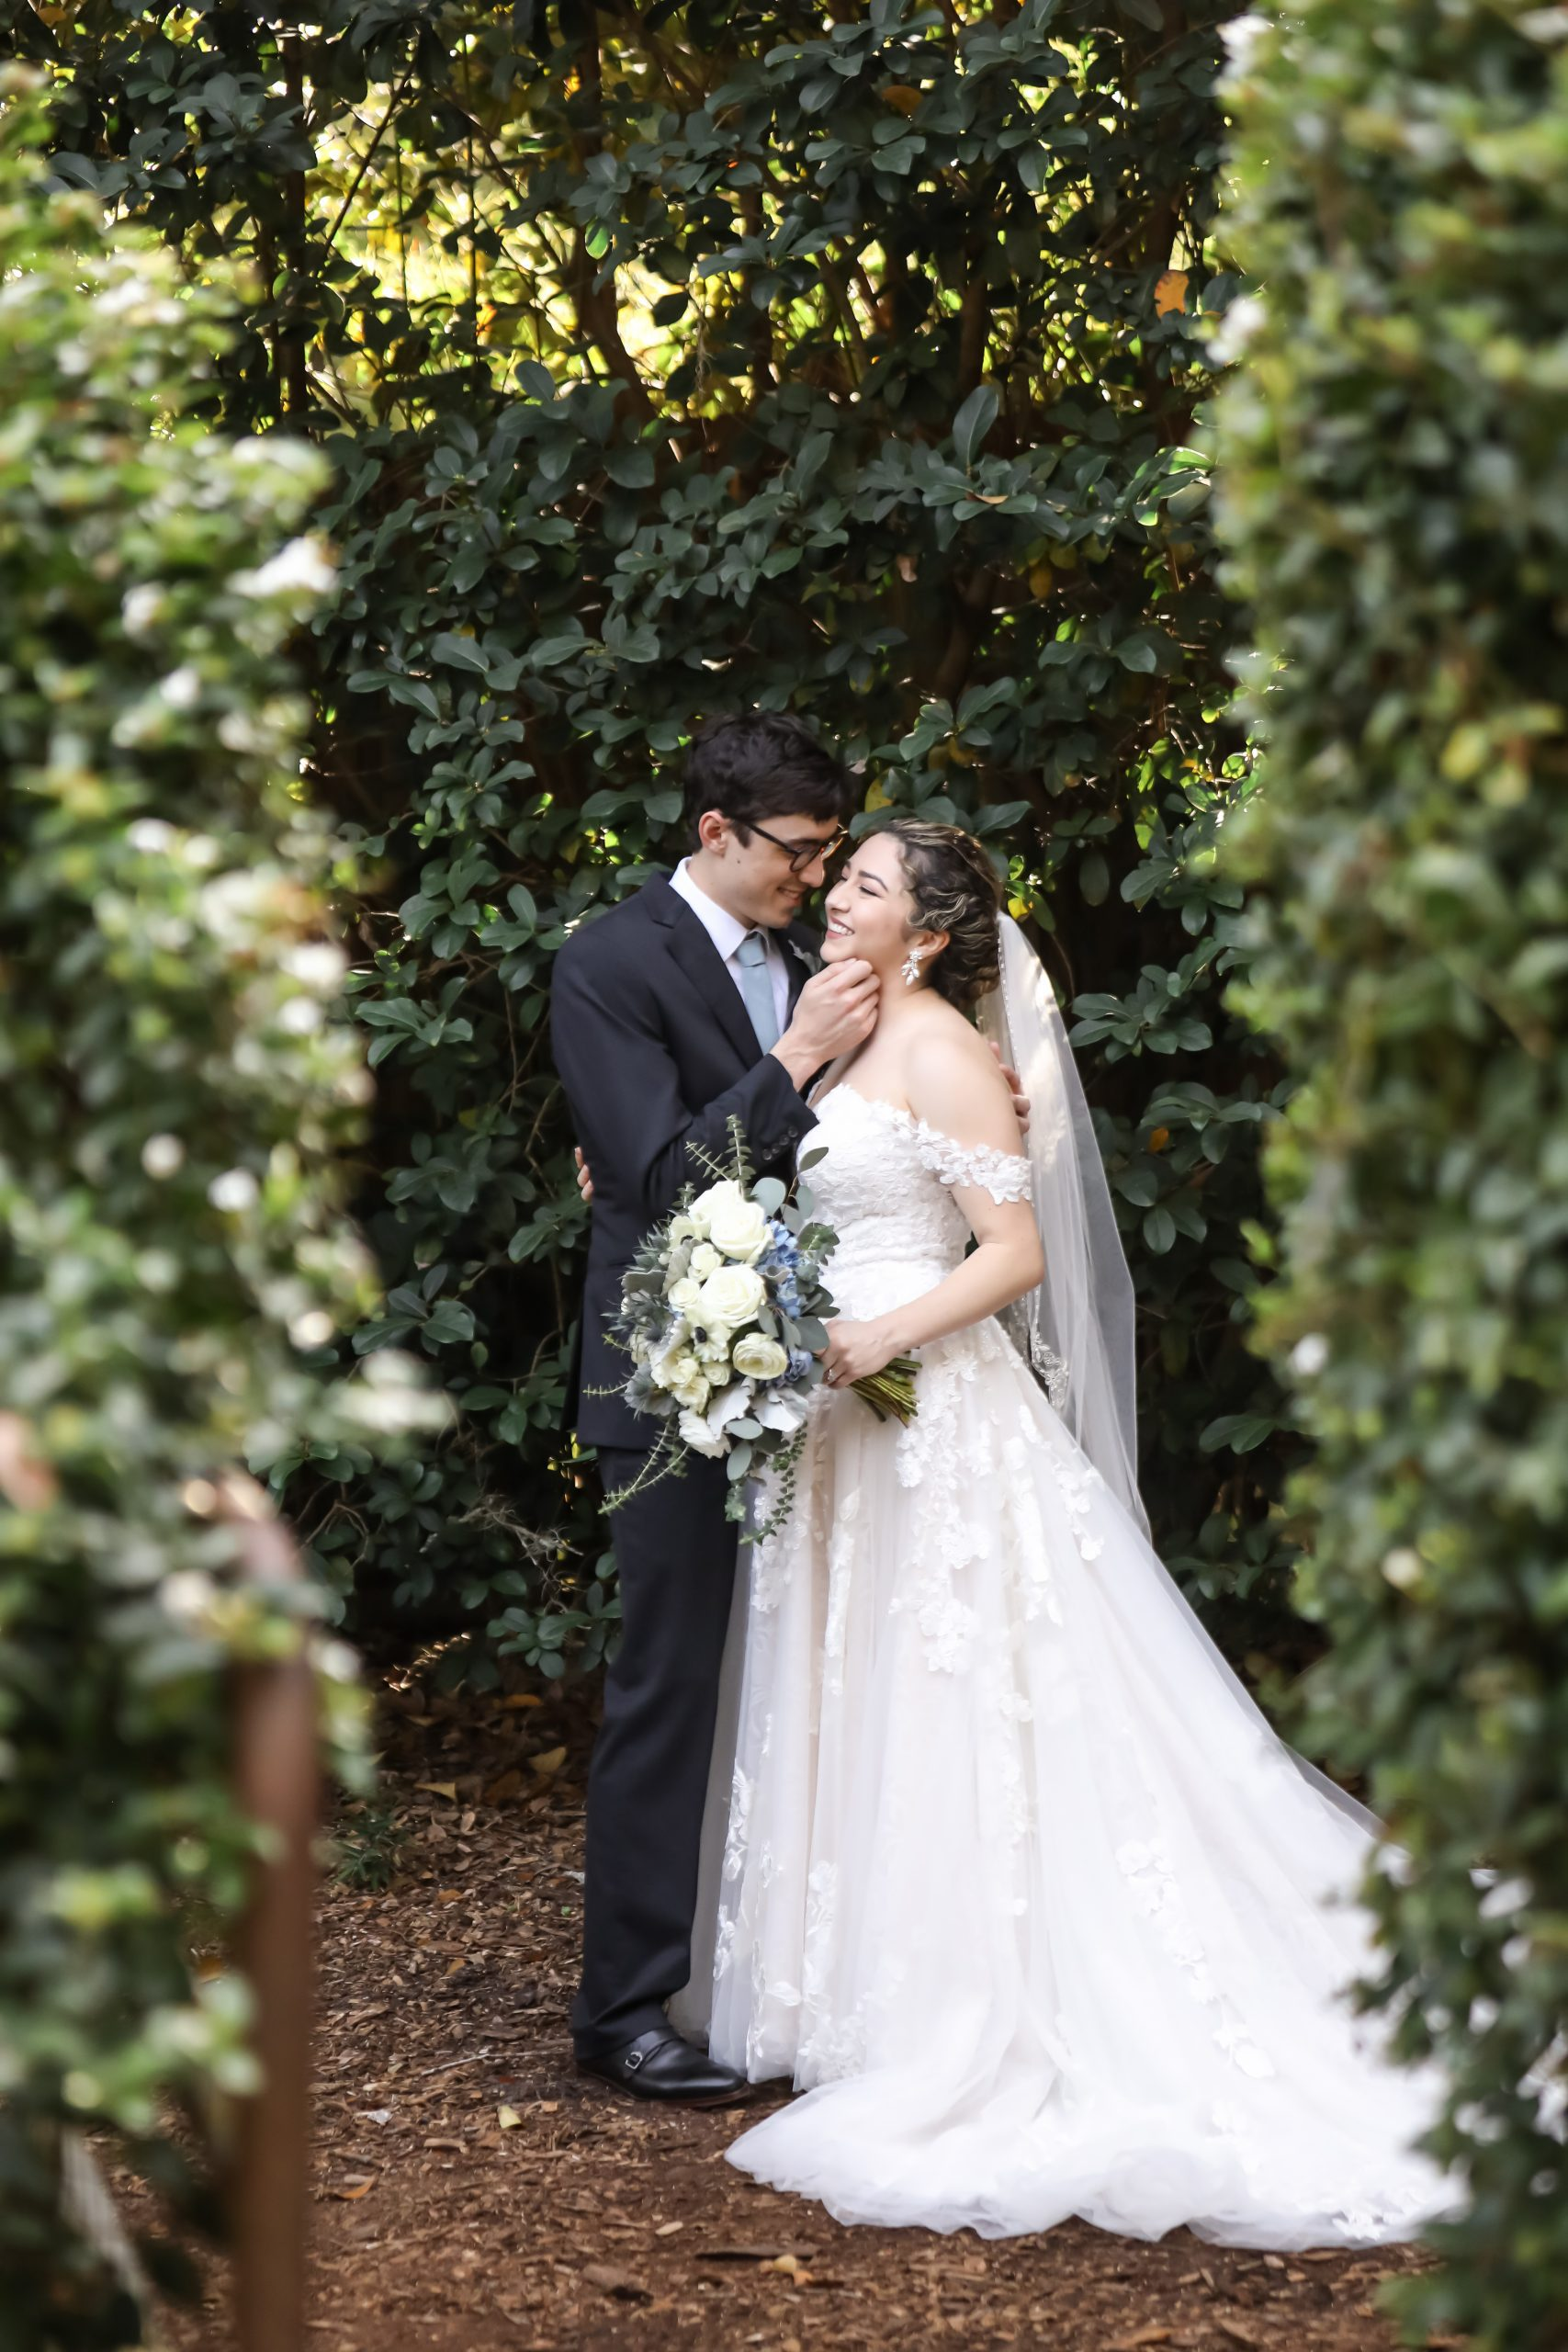 Mary Cate + Logan's Greenery-Filled Wedding